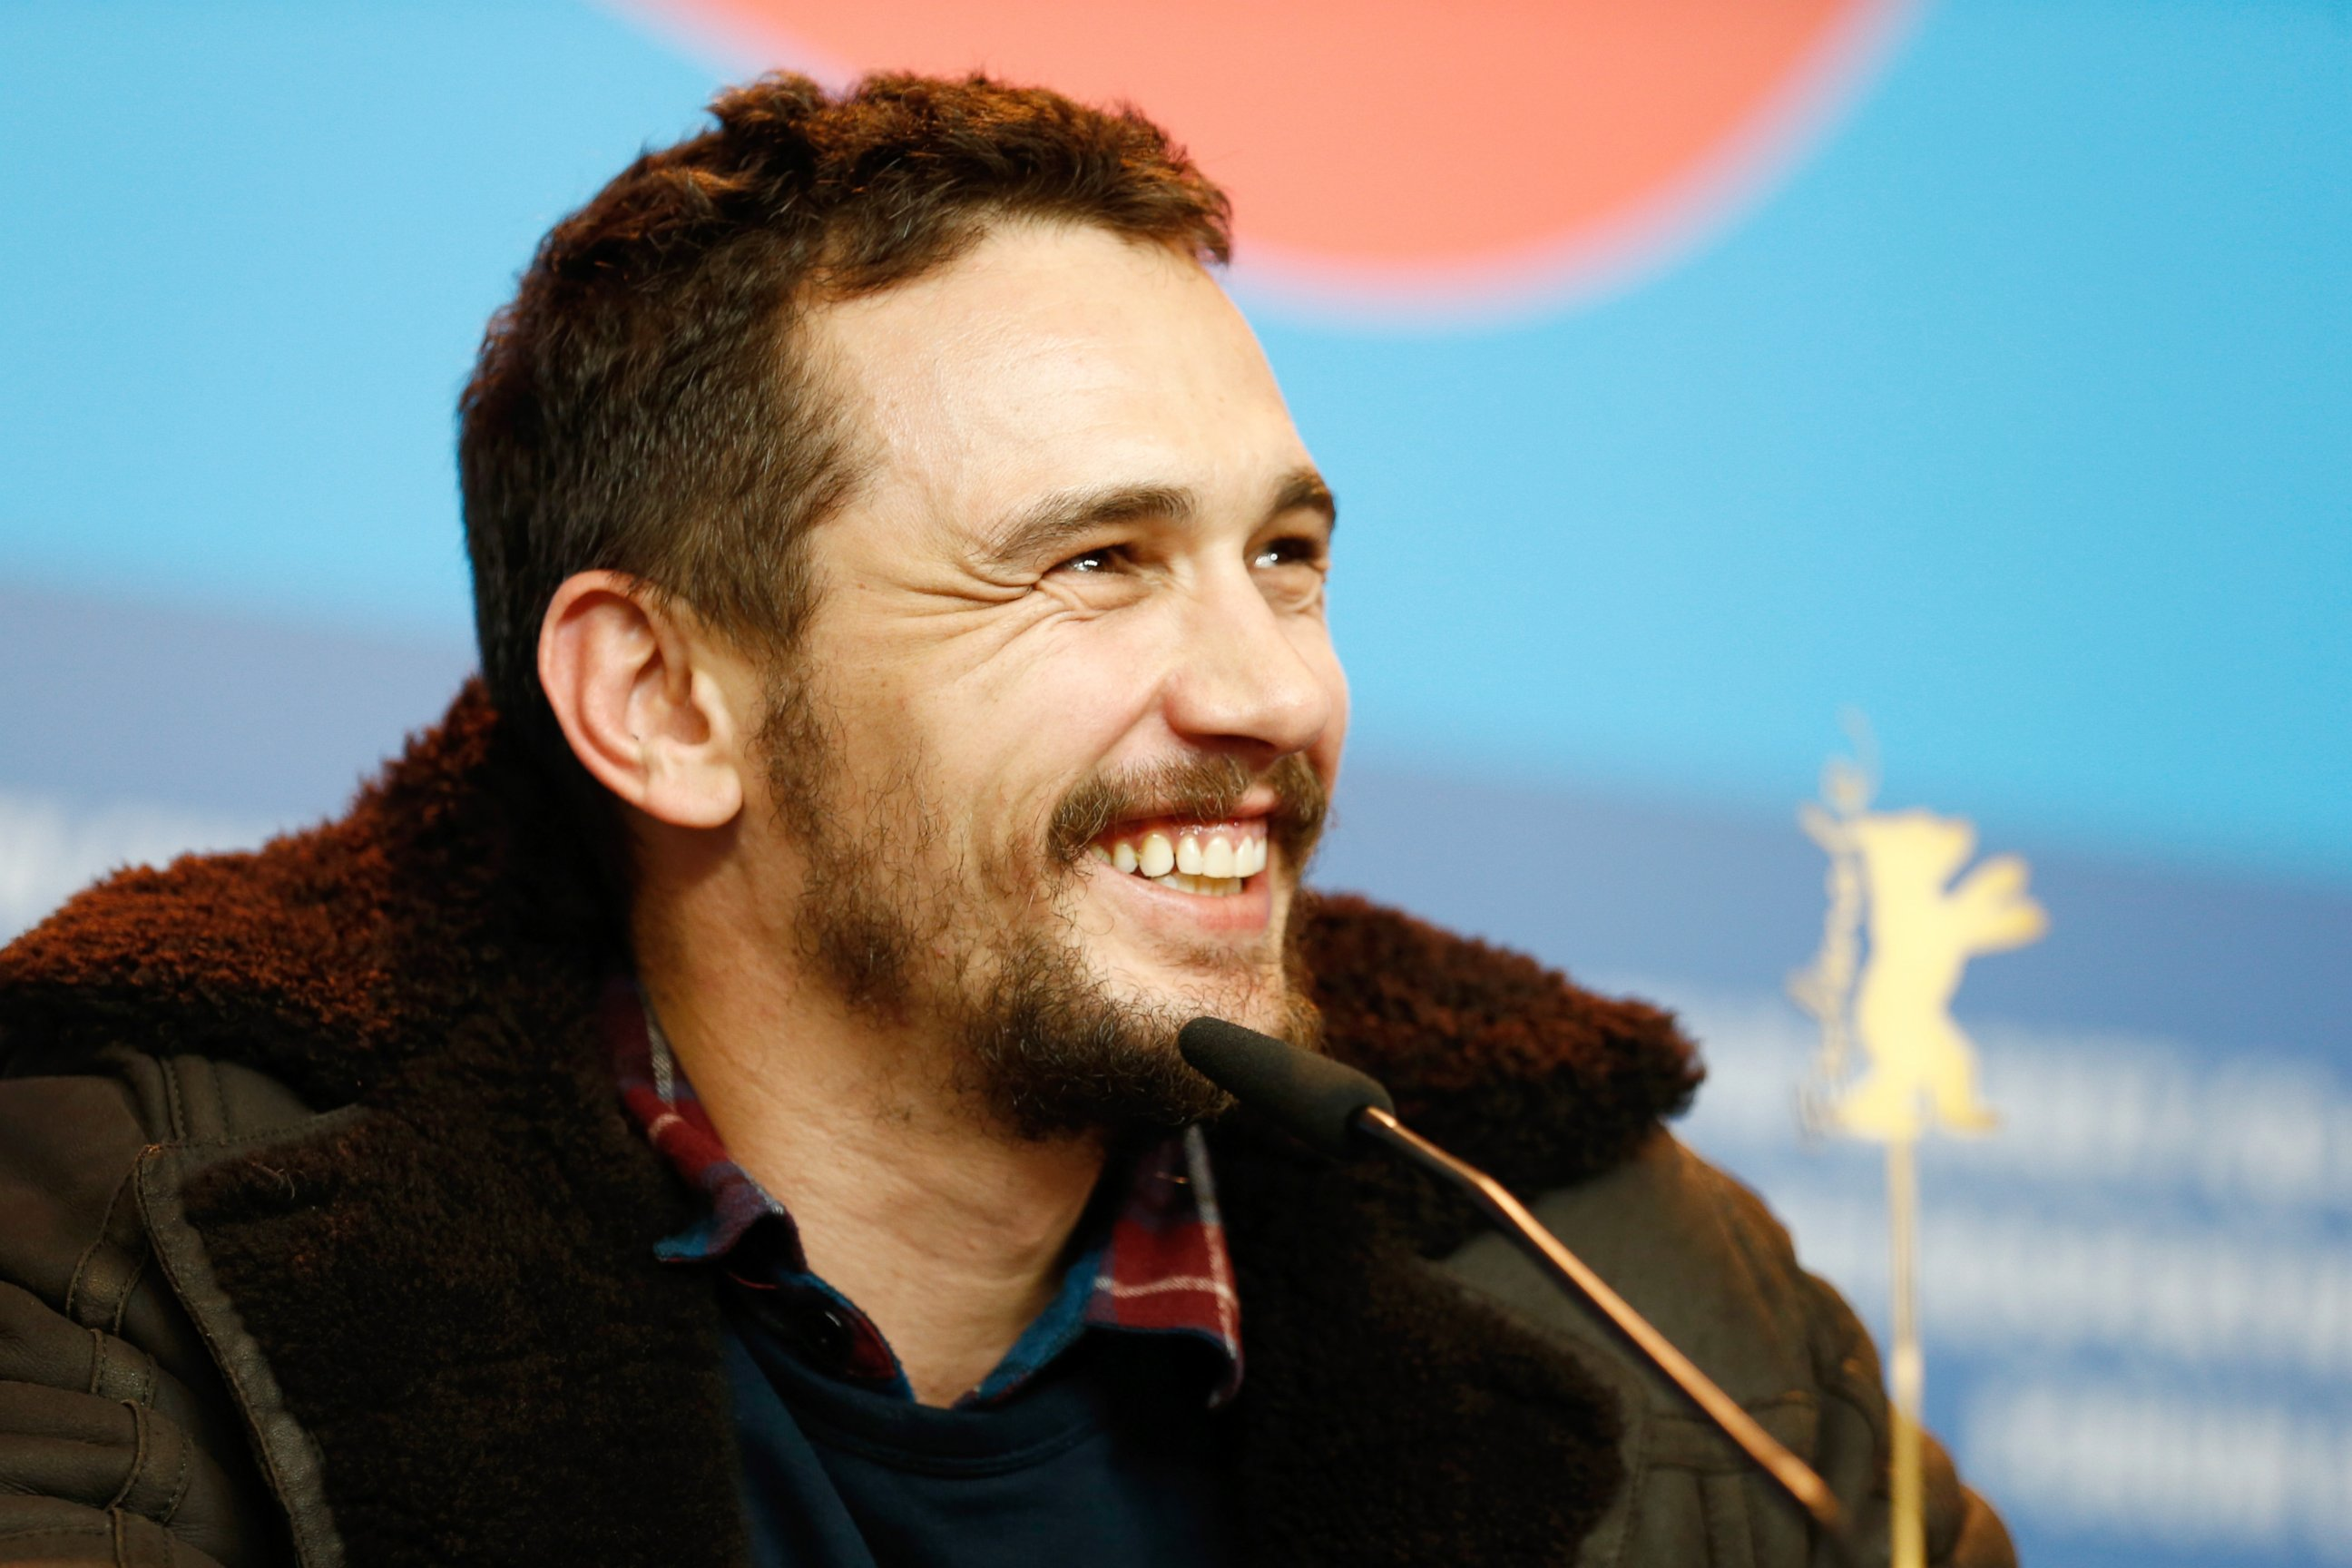 ... james franco felicity jones wed 25 mar 2015 james franco tue 3 mar